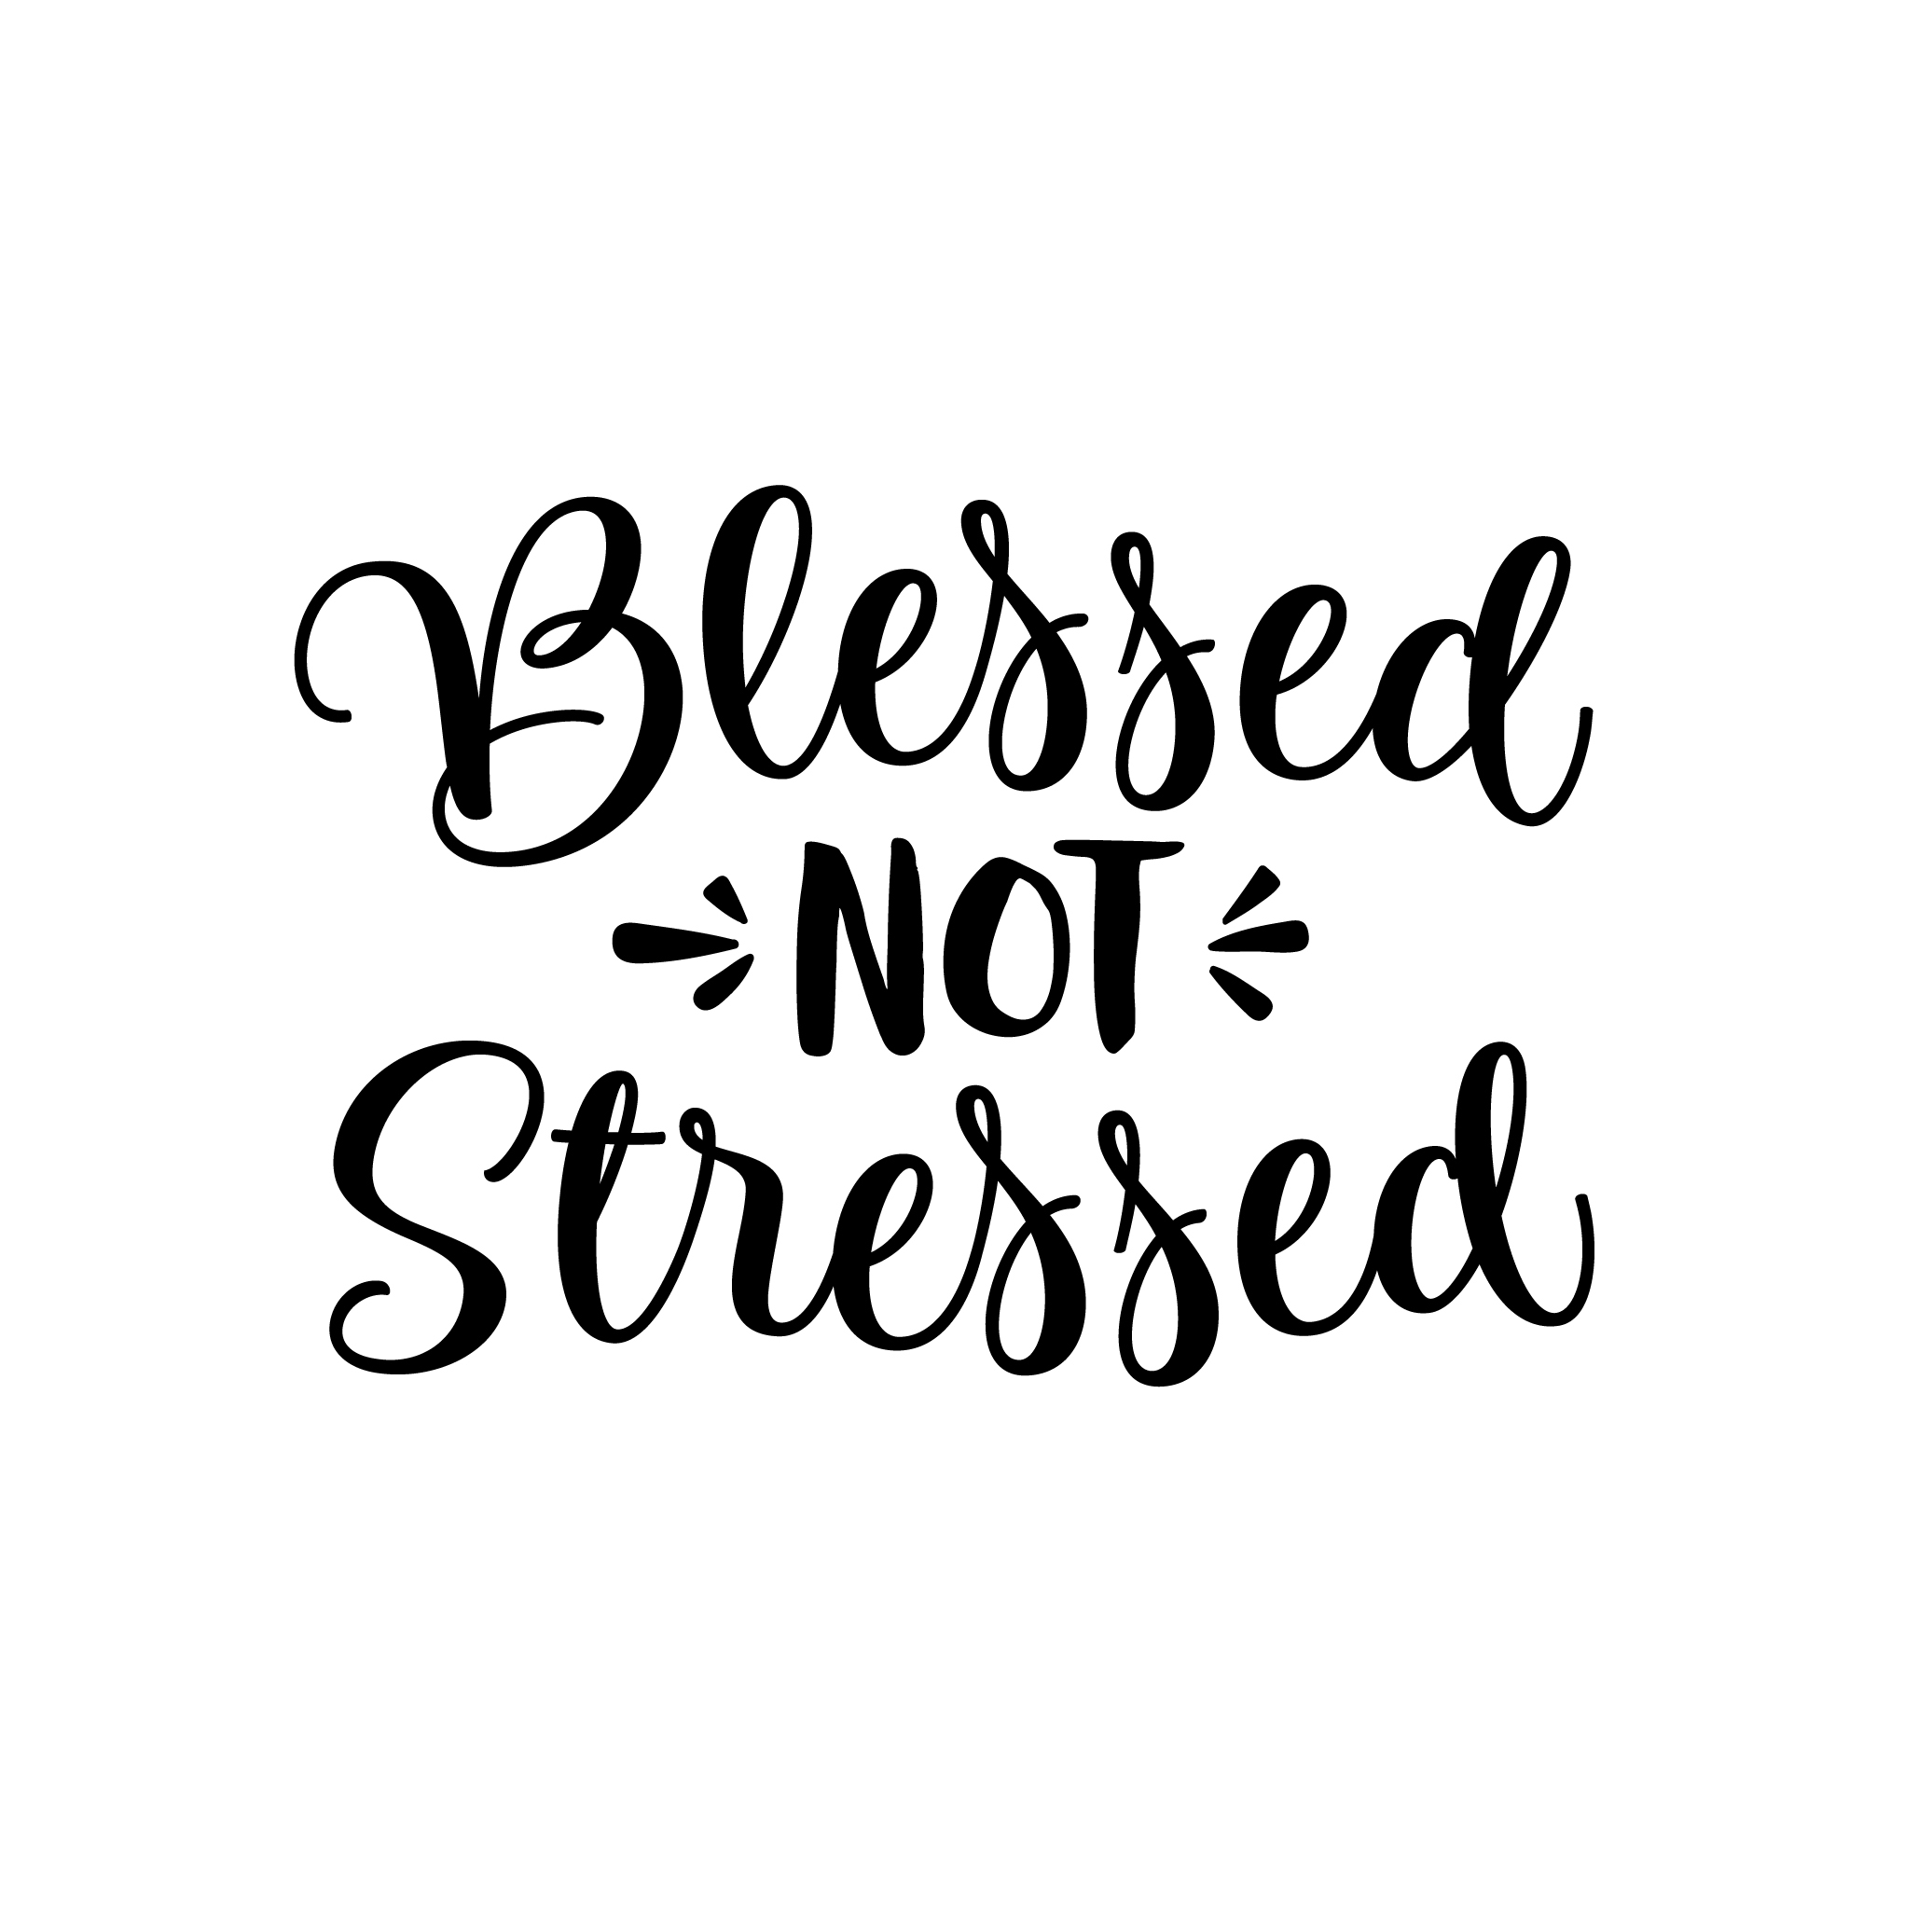 Blessed Not Stressed Graphics Svg Dxf Eps Png Vectordesign